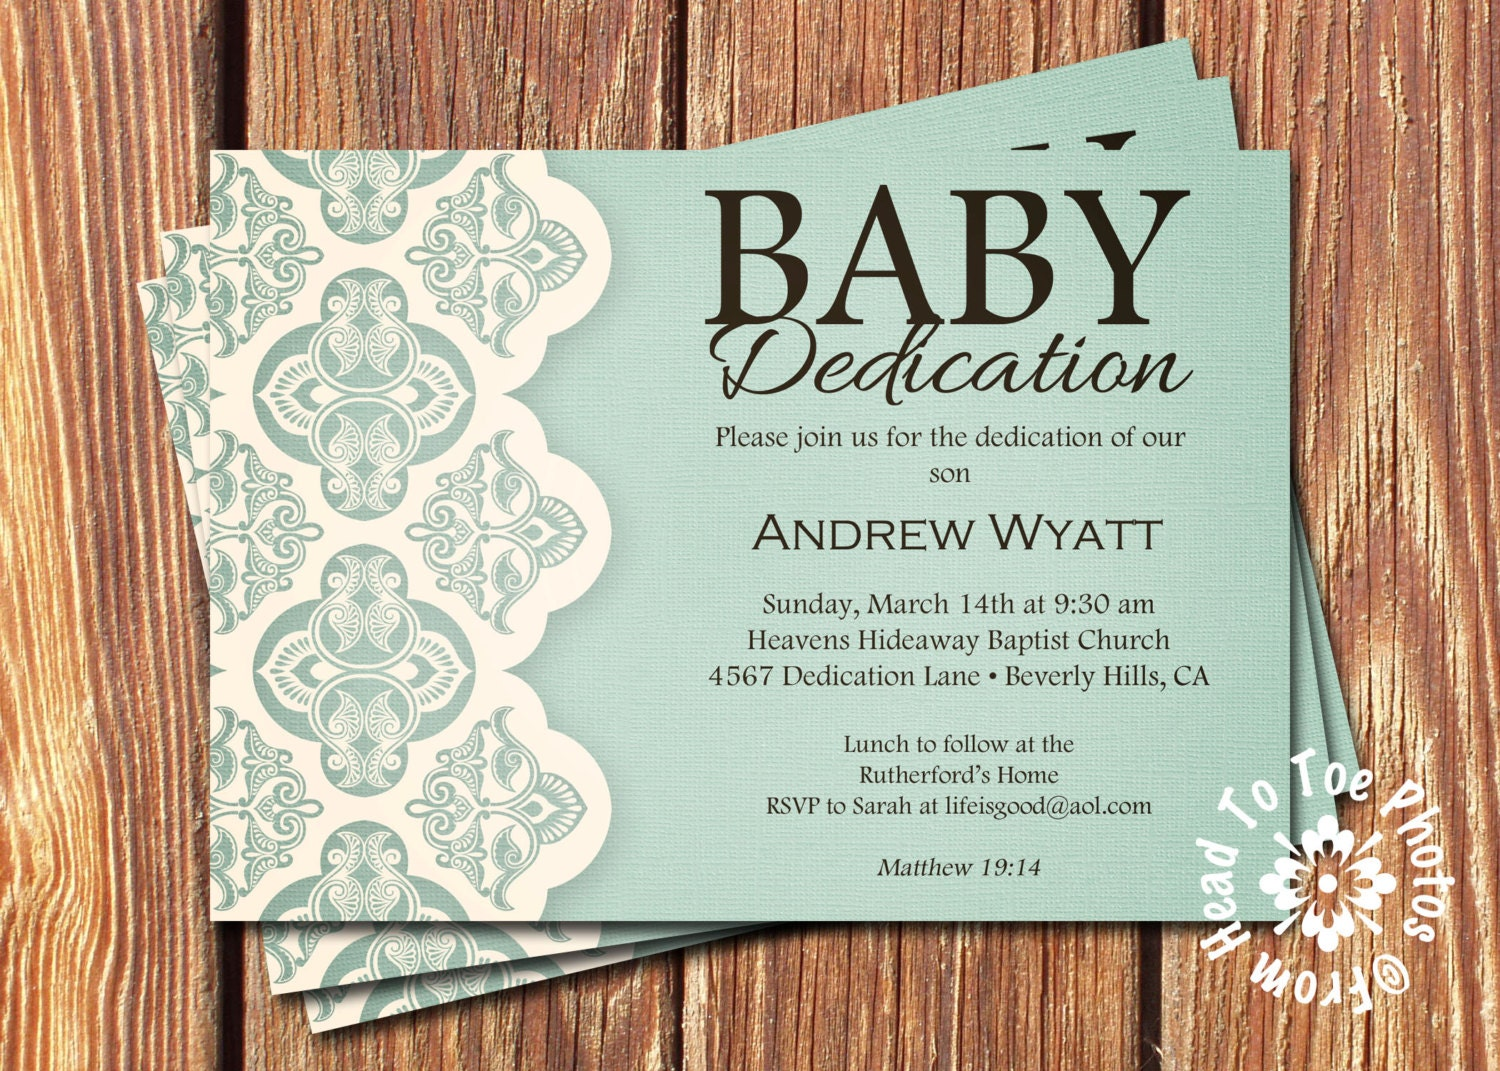 Baby Dedication Invitations by FromHeadtoToeDesigns on Etsy